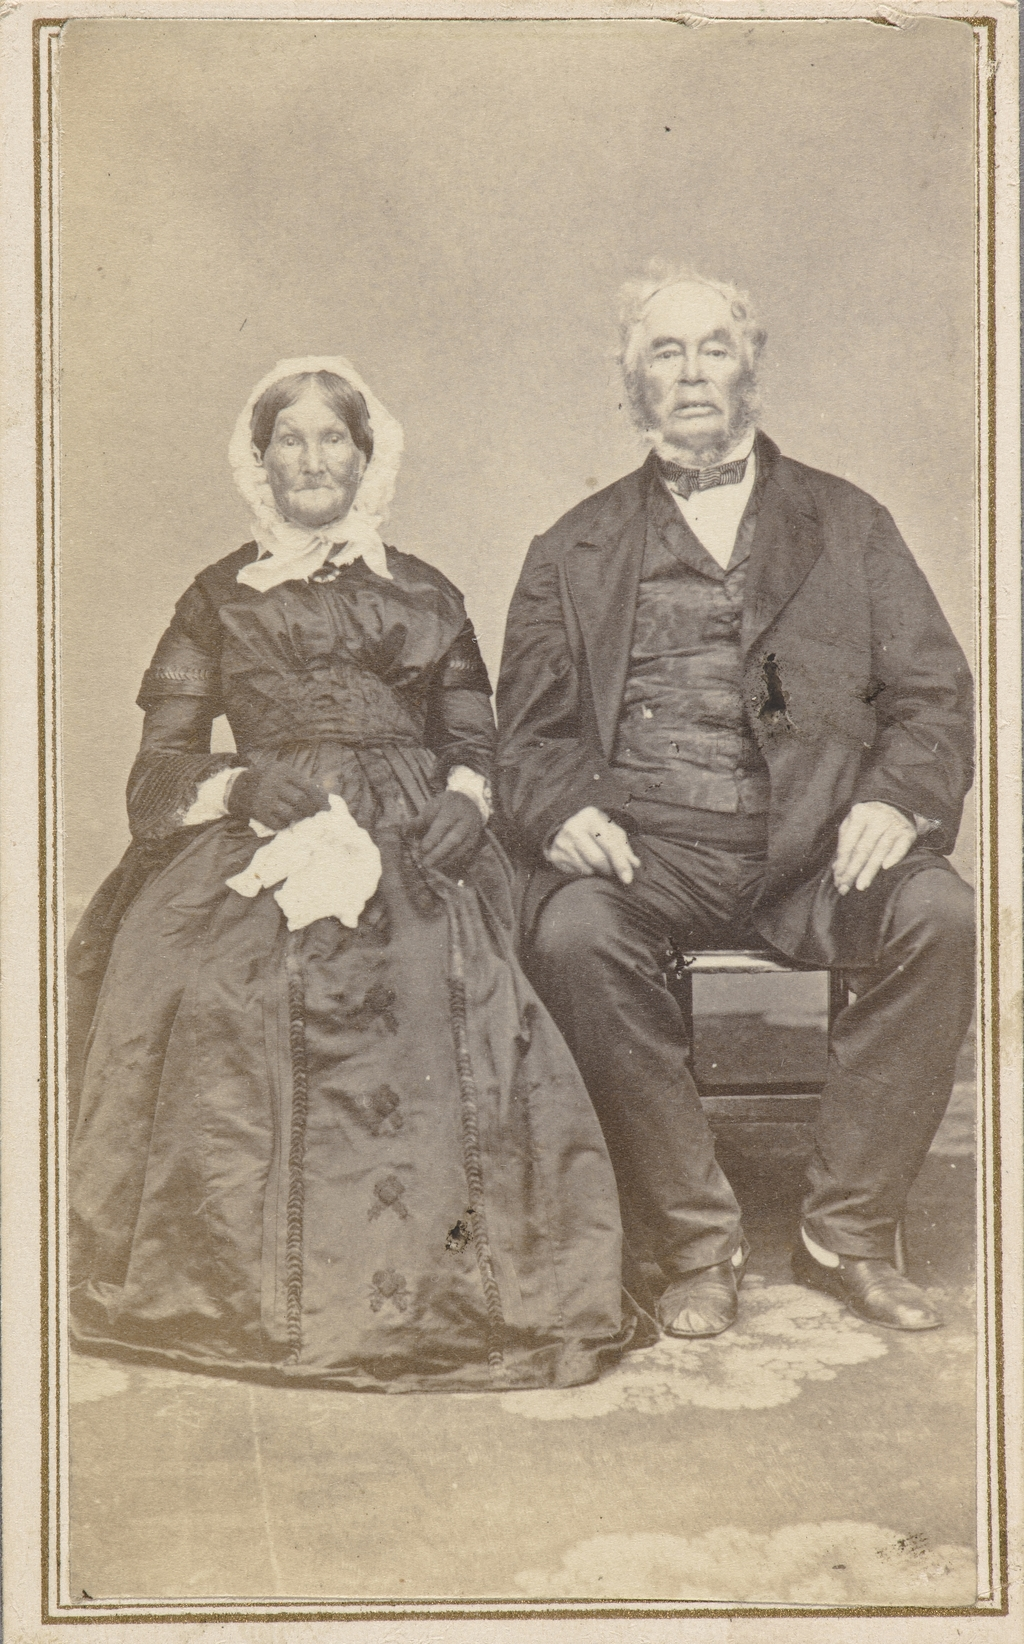 Portrait de couple, de l'album de collection dit de Napoléon Garneau